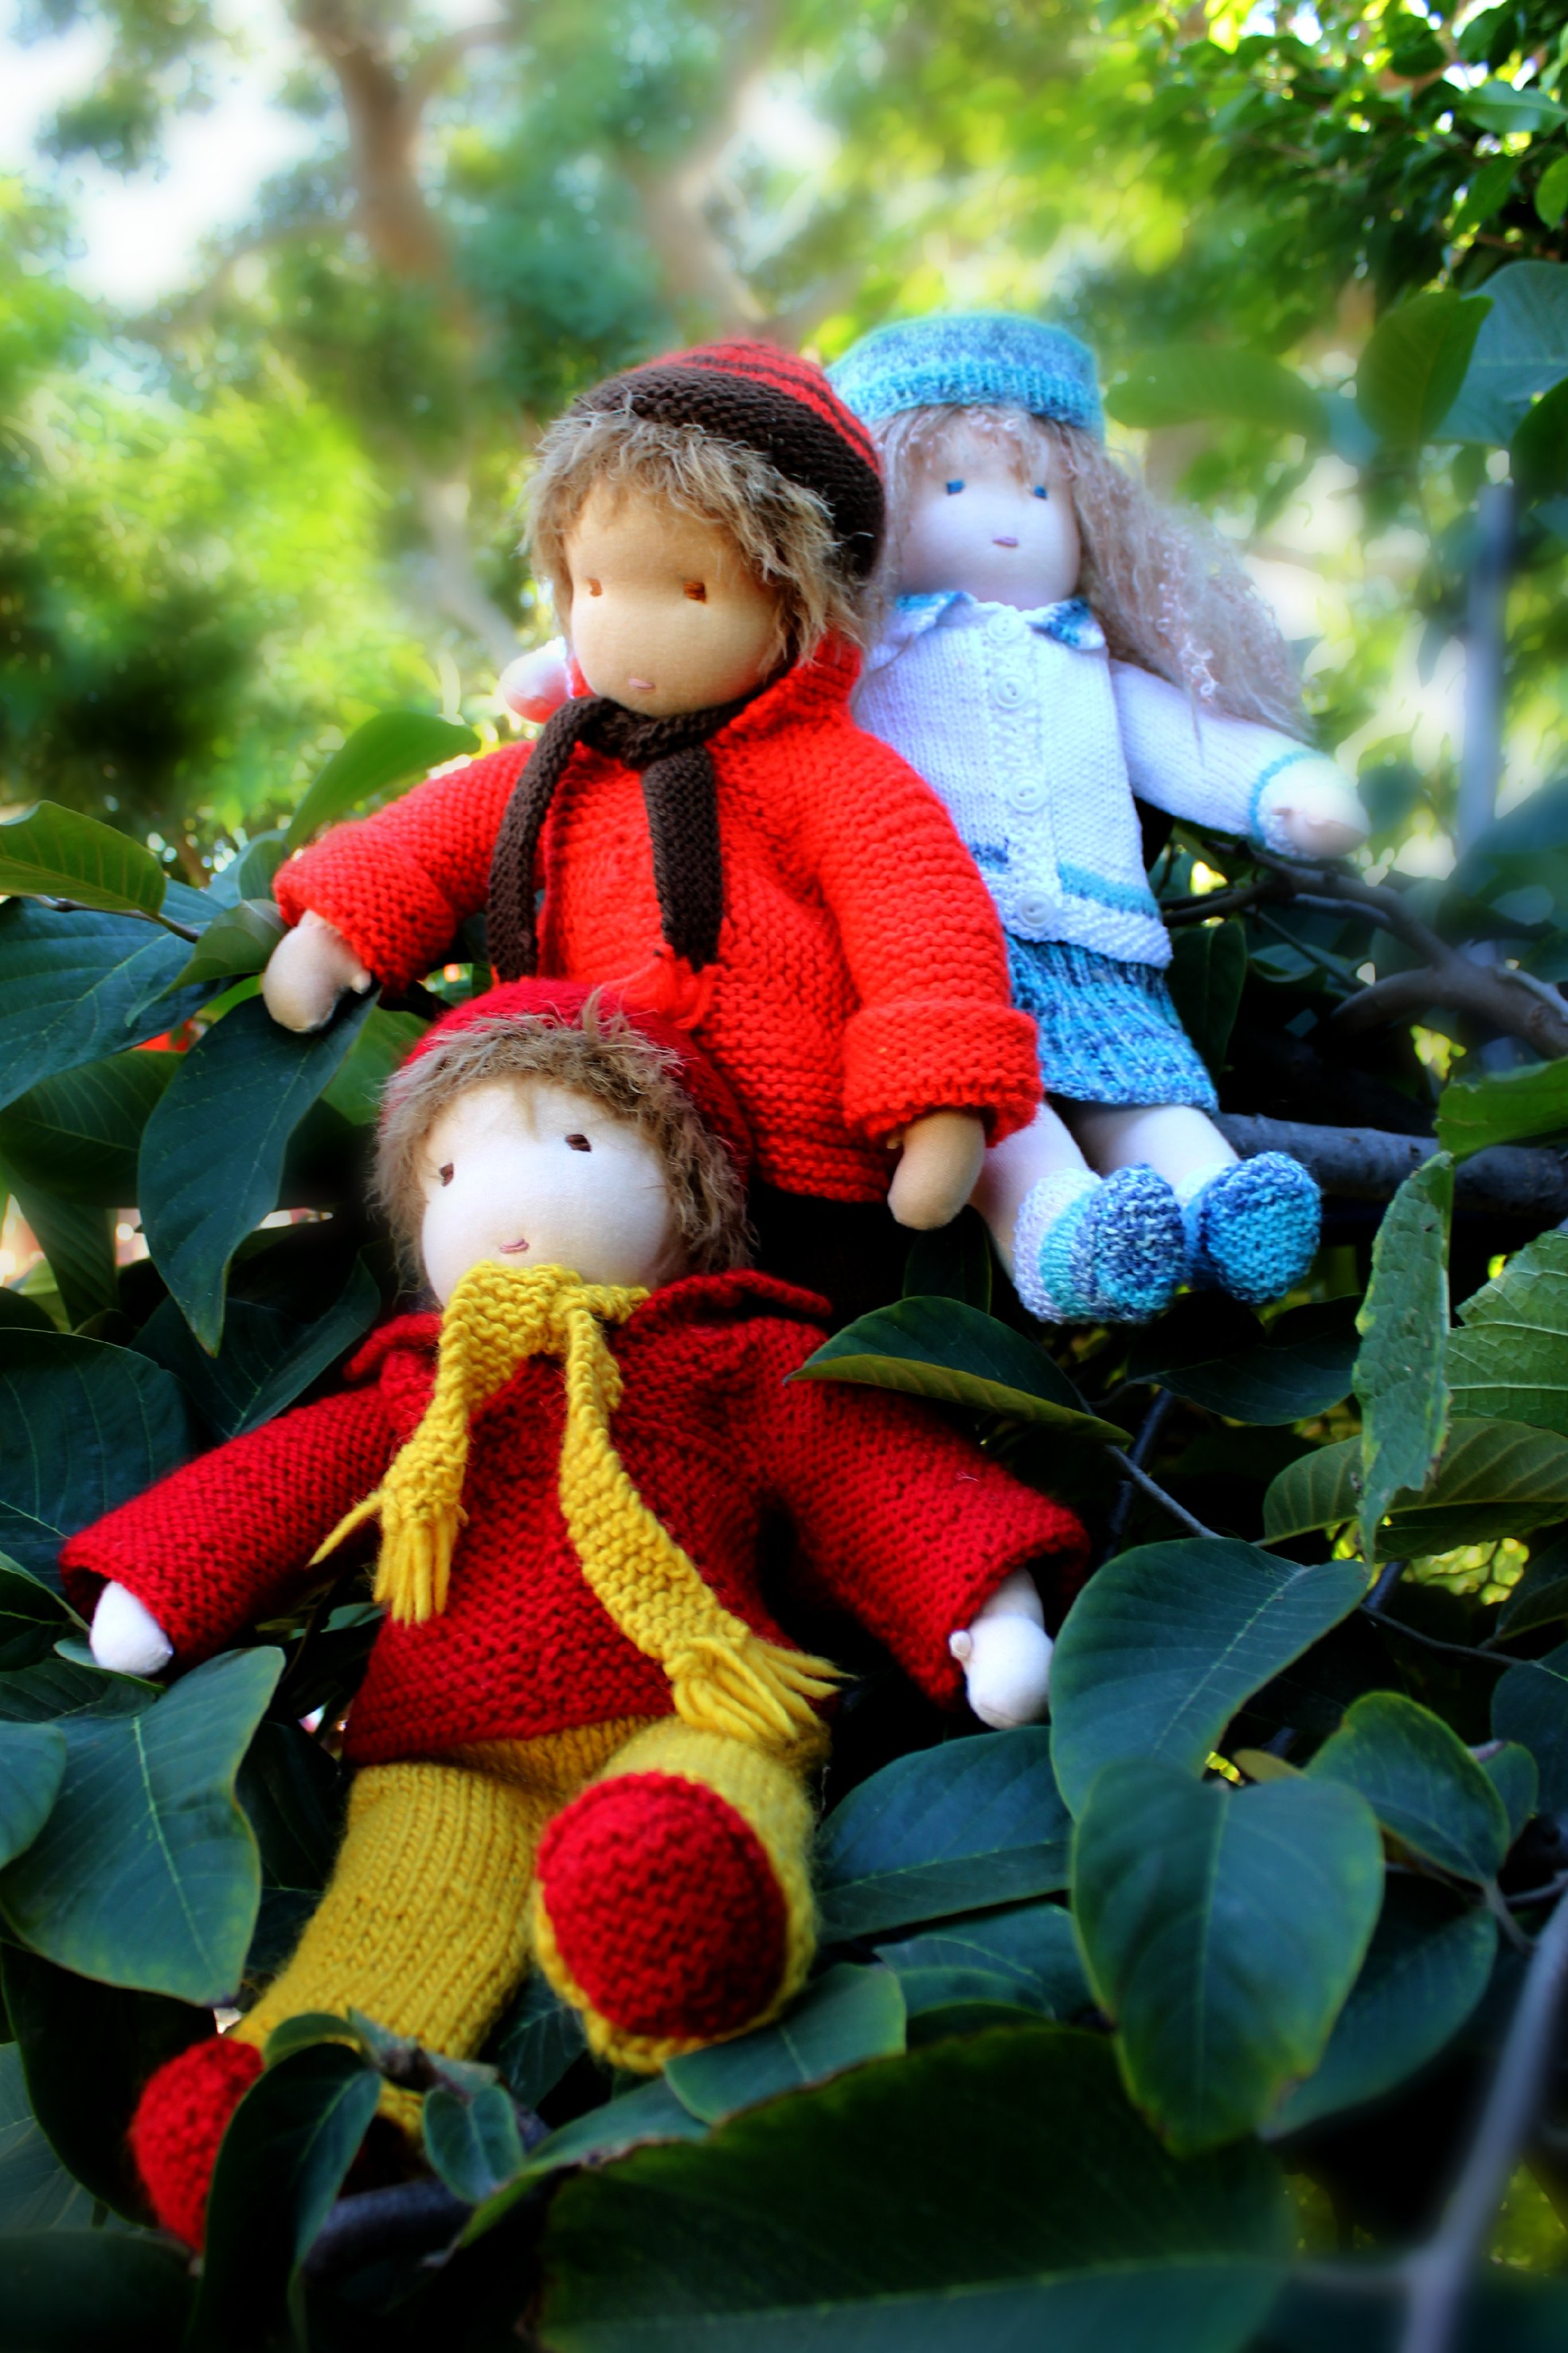 121219 Christine Newell's 3 16 inch Waldorf cuddle dolls sitting in the cherimoya tree 3